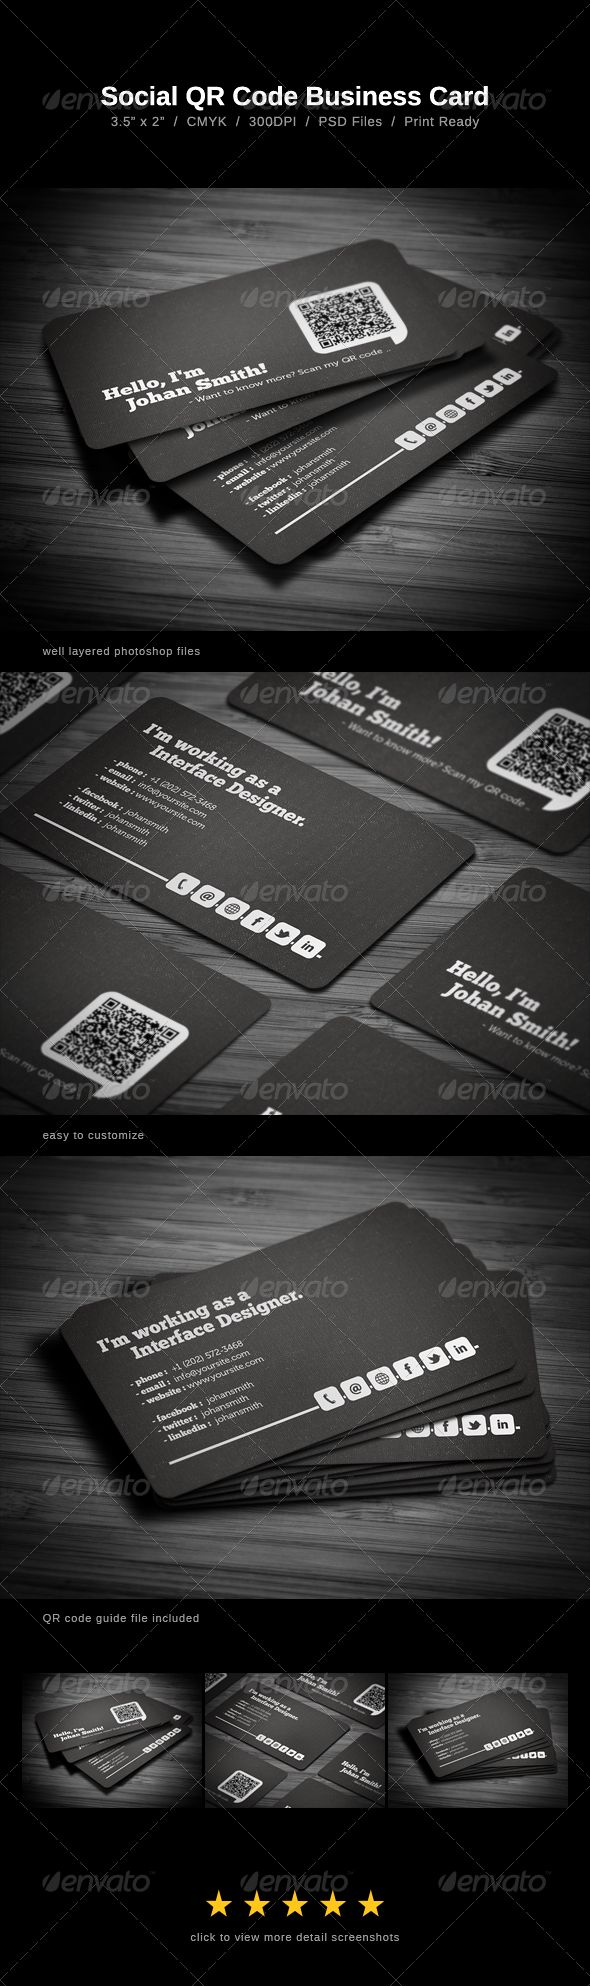 23 best Business Cards with Social Media Contact Information images ...